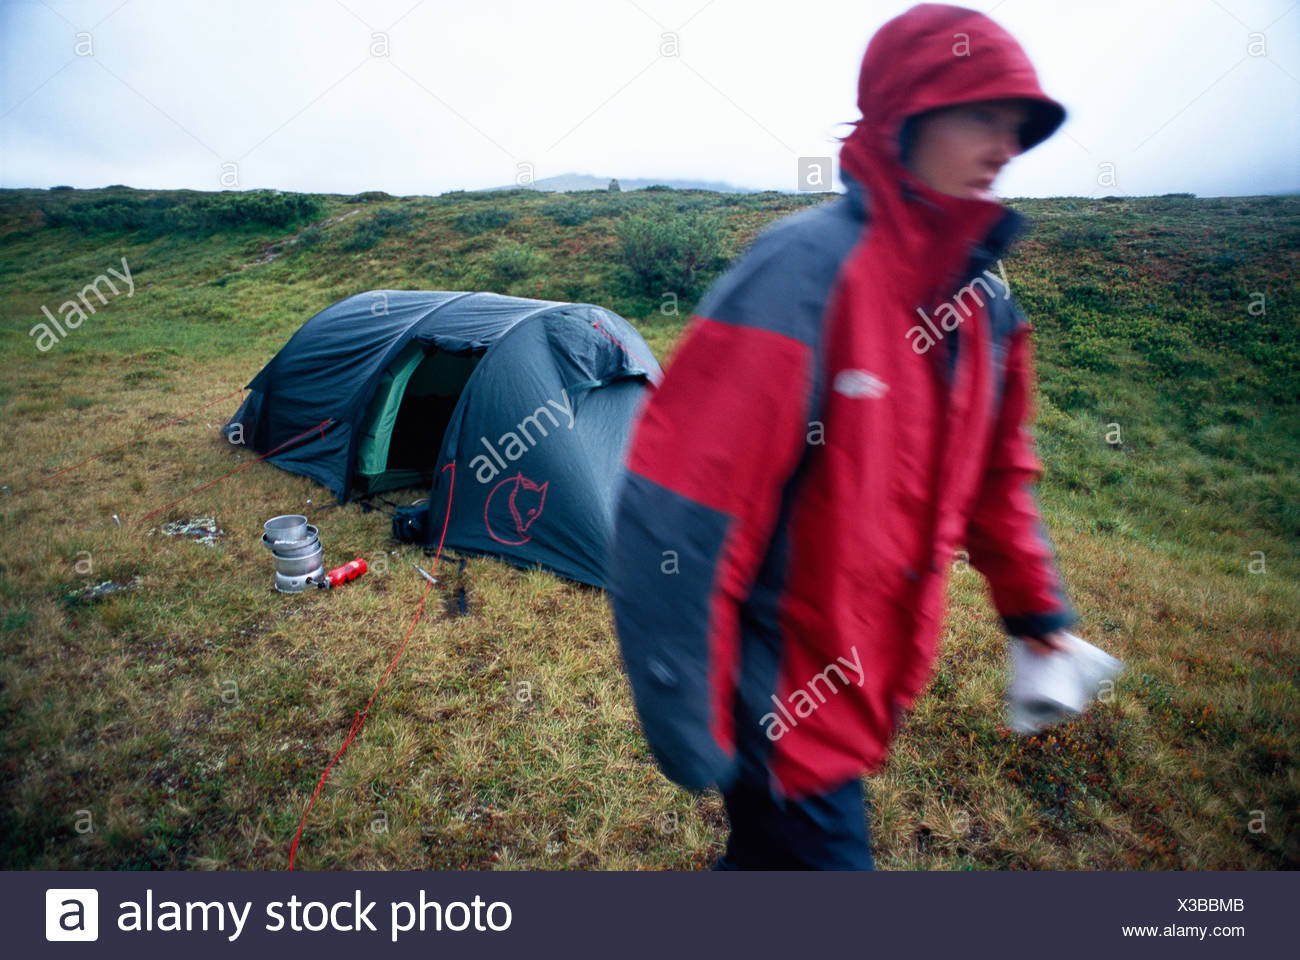 Woman camping. - Stock Image